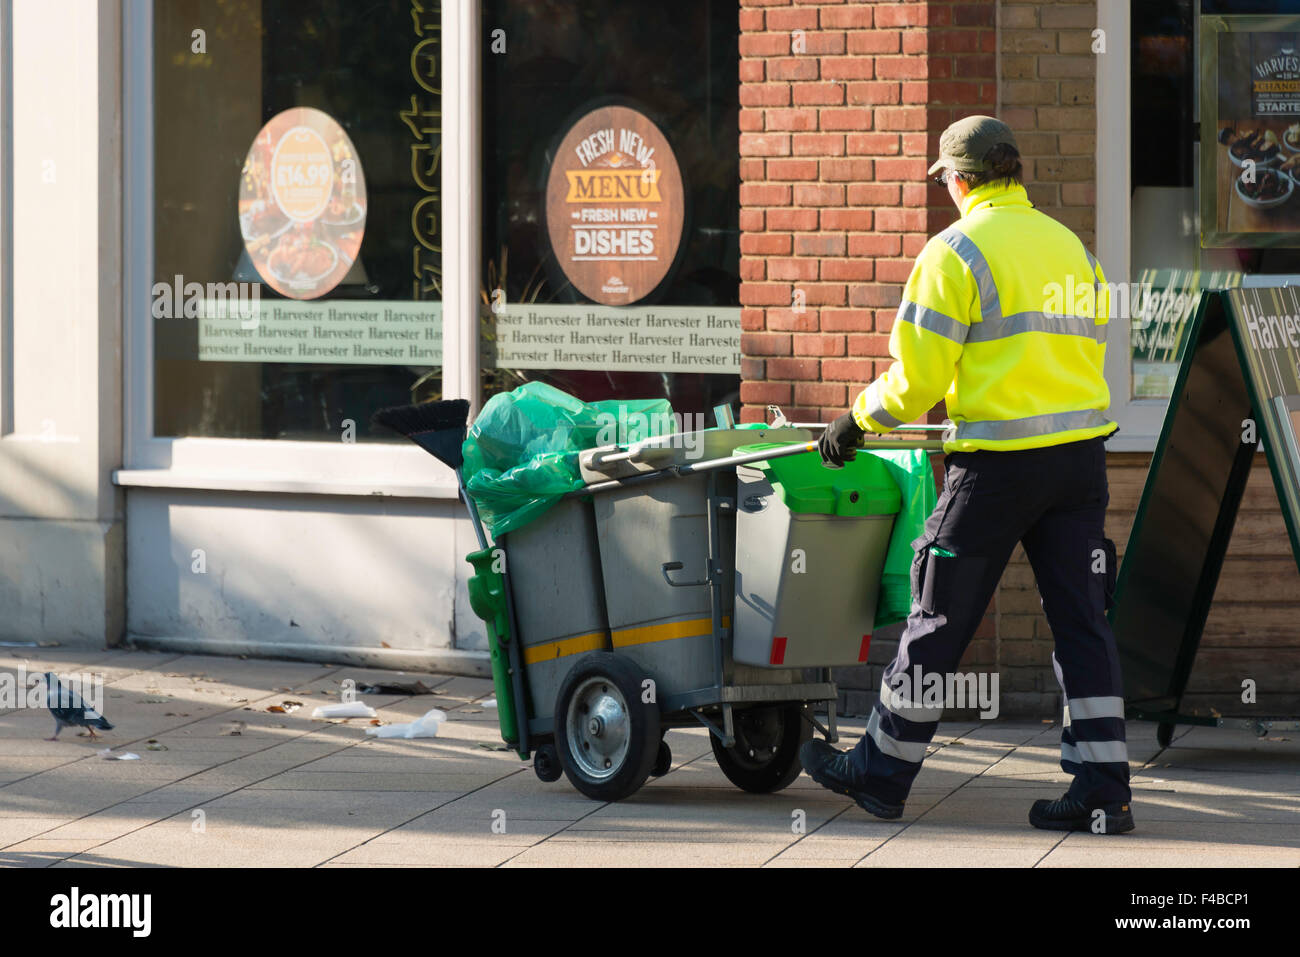 Street cleaner in High Street, Staines-upon-Thames, Surrey, England, United Kingdom - Stock Image